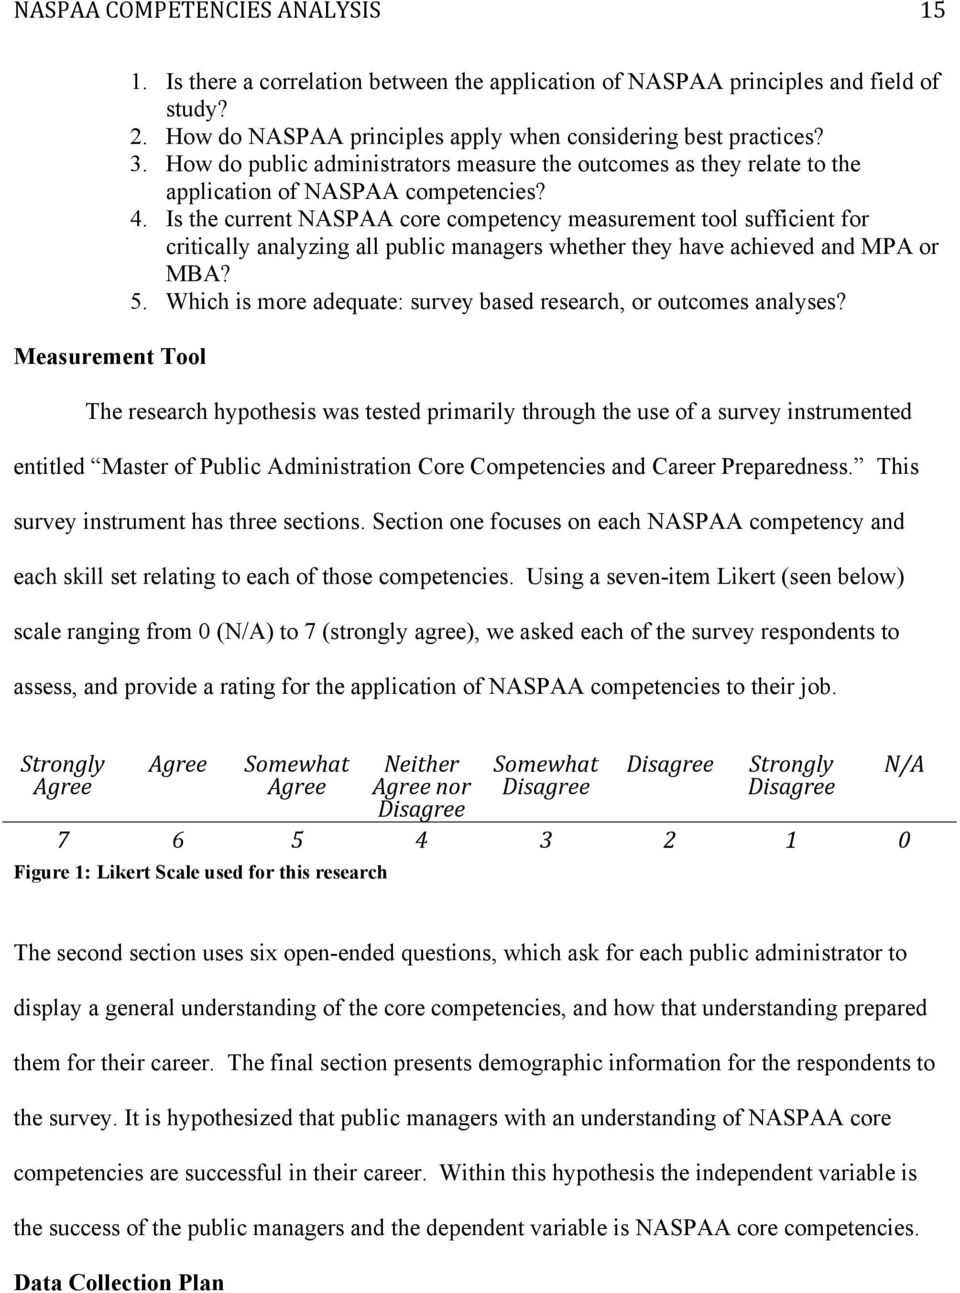 Is the current NASPAA core competency measurement tool sufficient for critically analyzing all public managers whether they have achieved and MPA or MBA? 5.